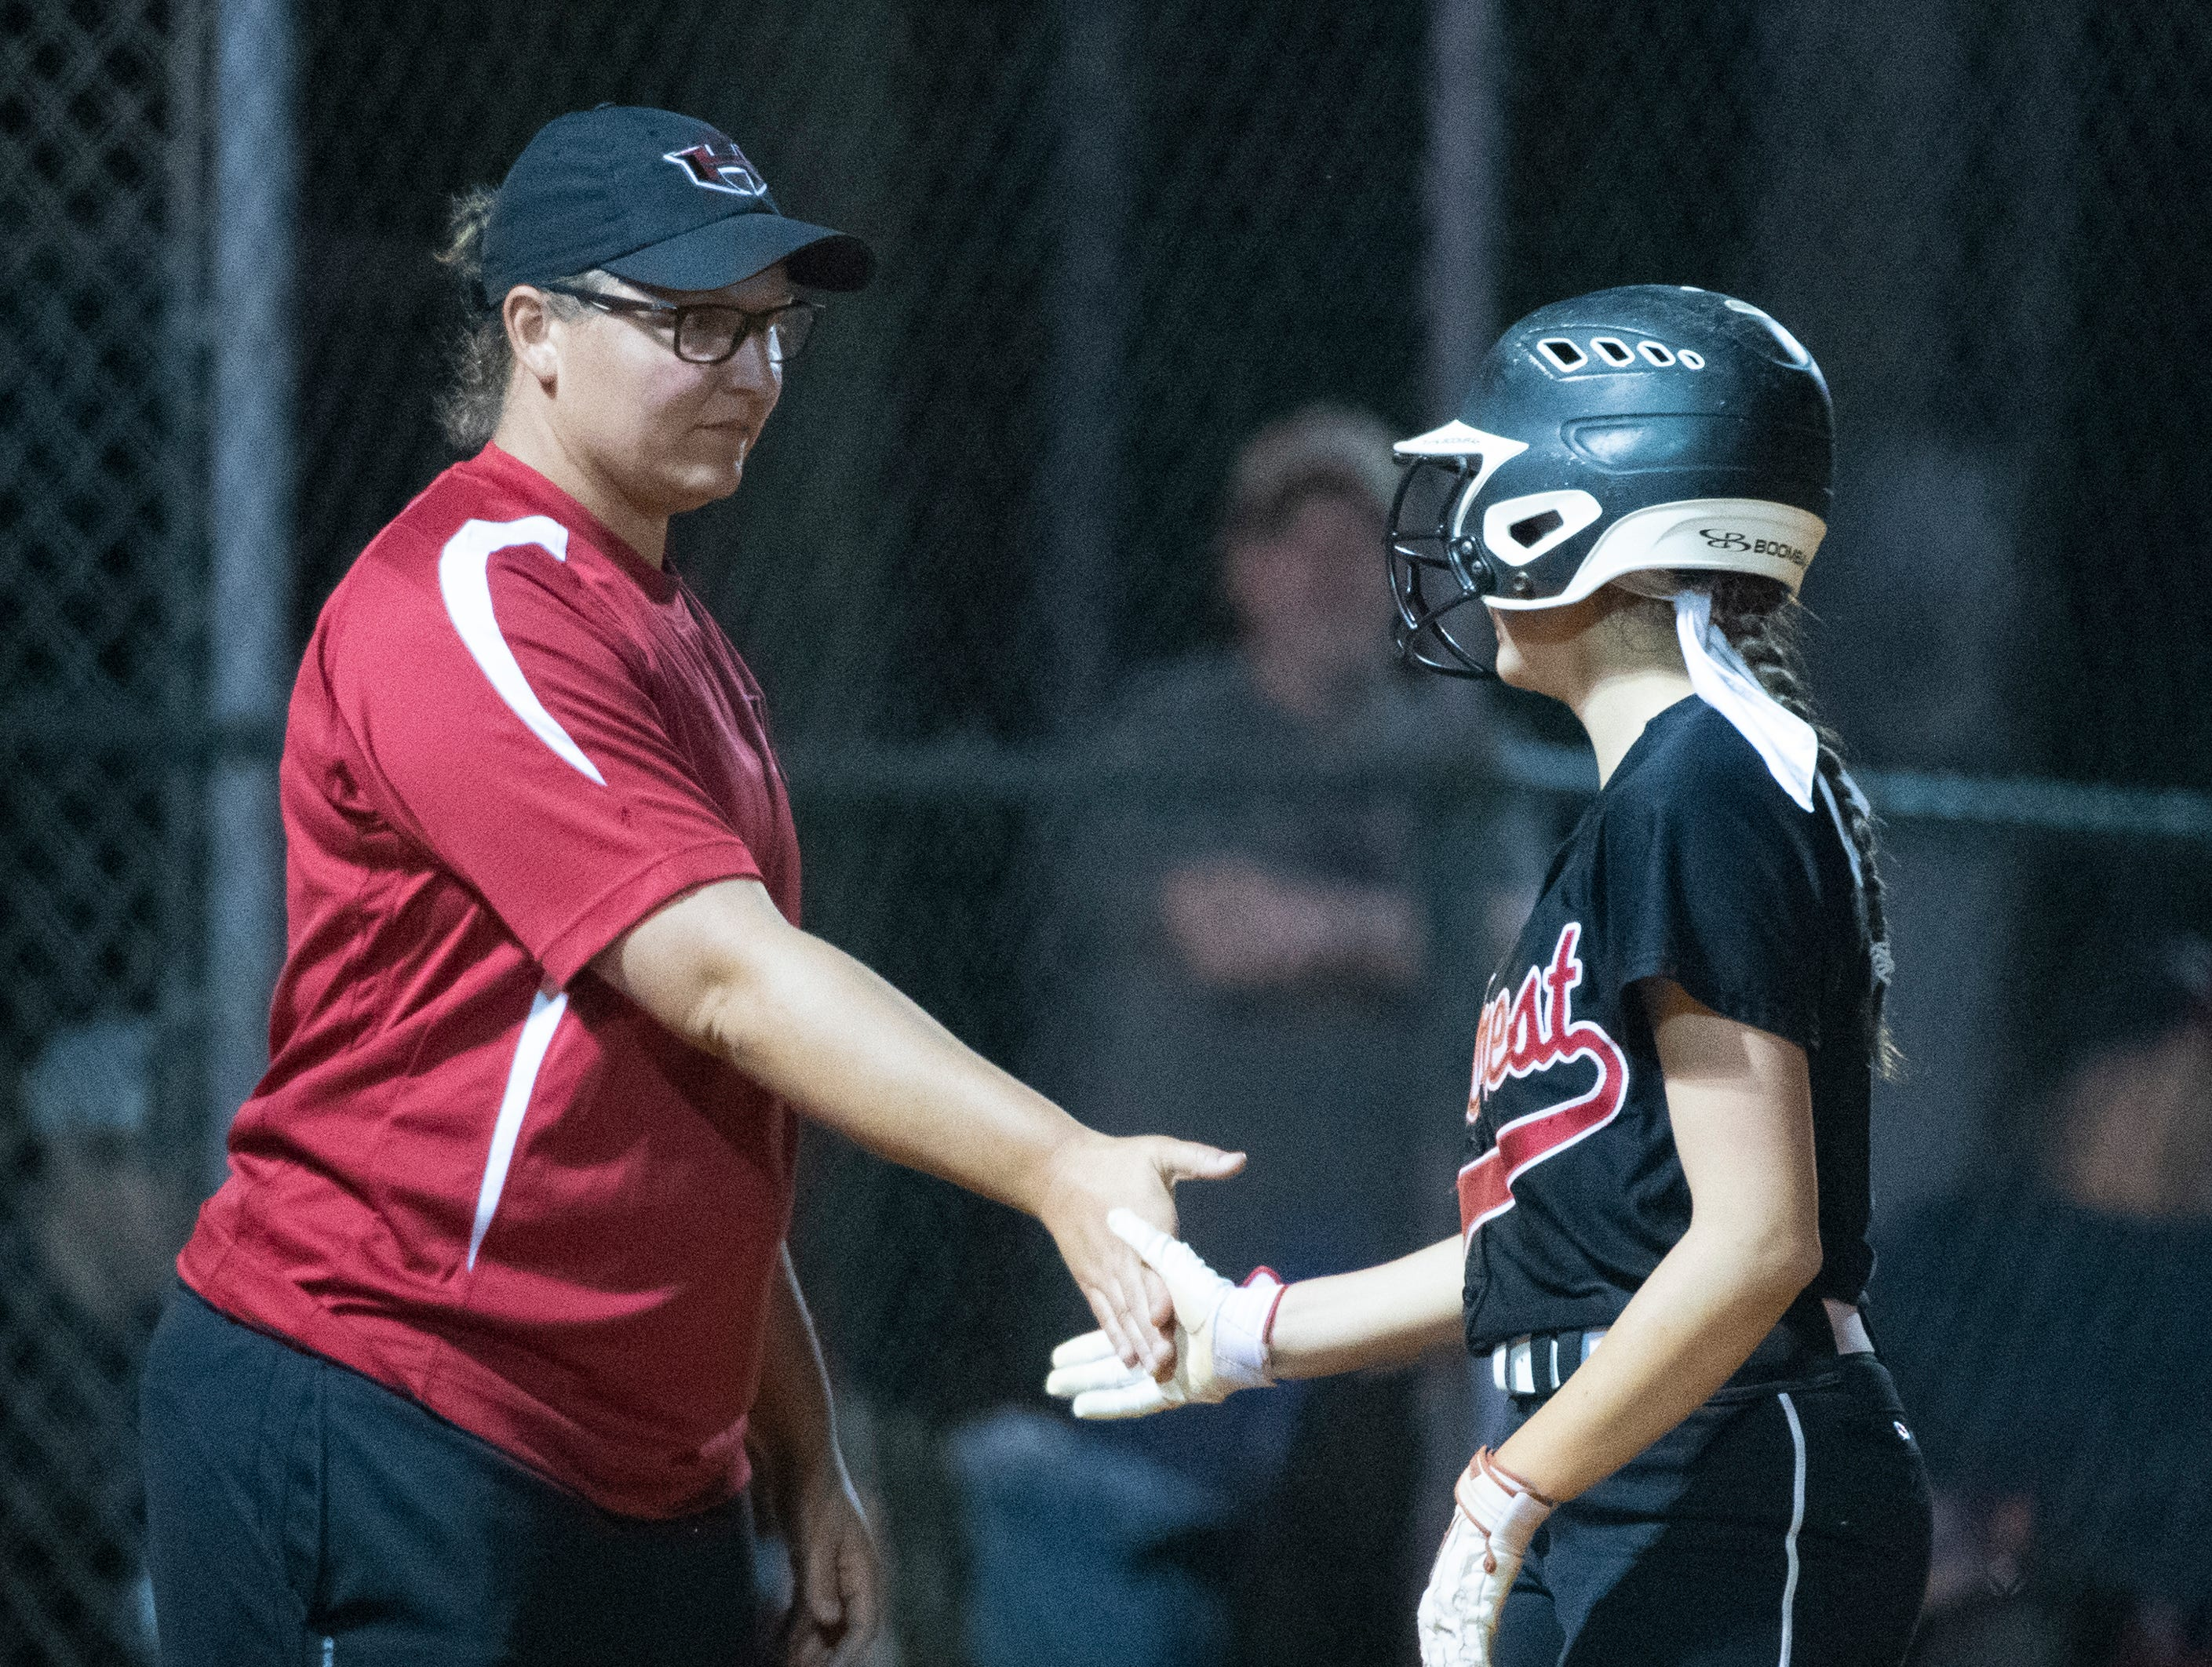 Hillcrest's Abby Willis (6) and coach Kristen Brust slap hands after Willis ran to third base during the game against Boiling Springs High School at Hillcrest Friday, April 12, 2019.